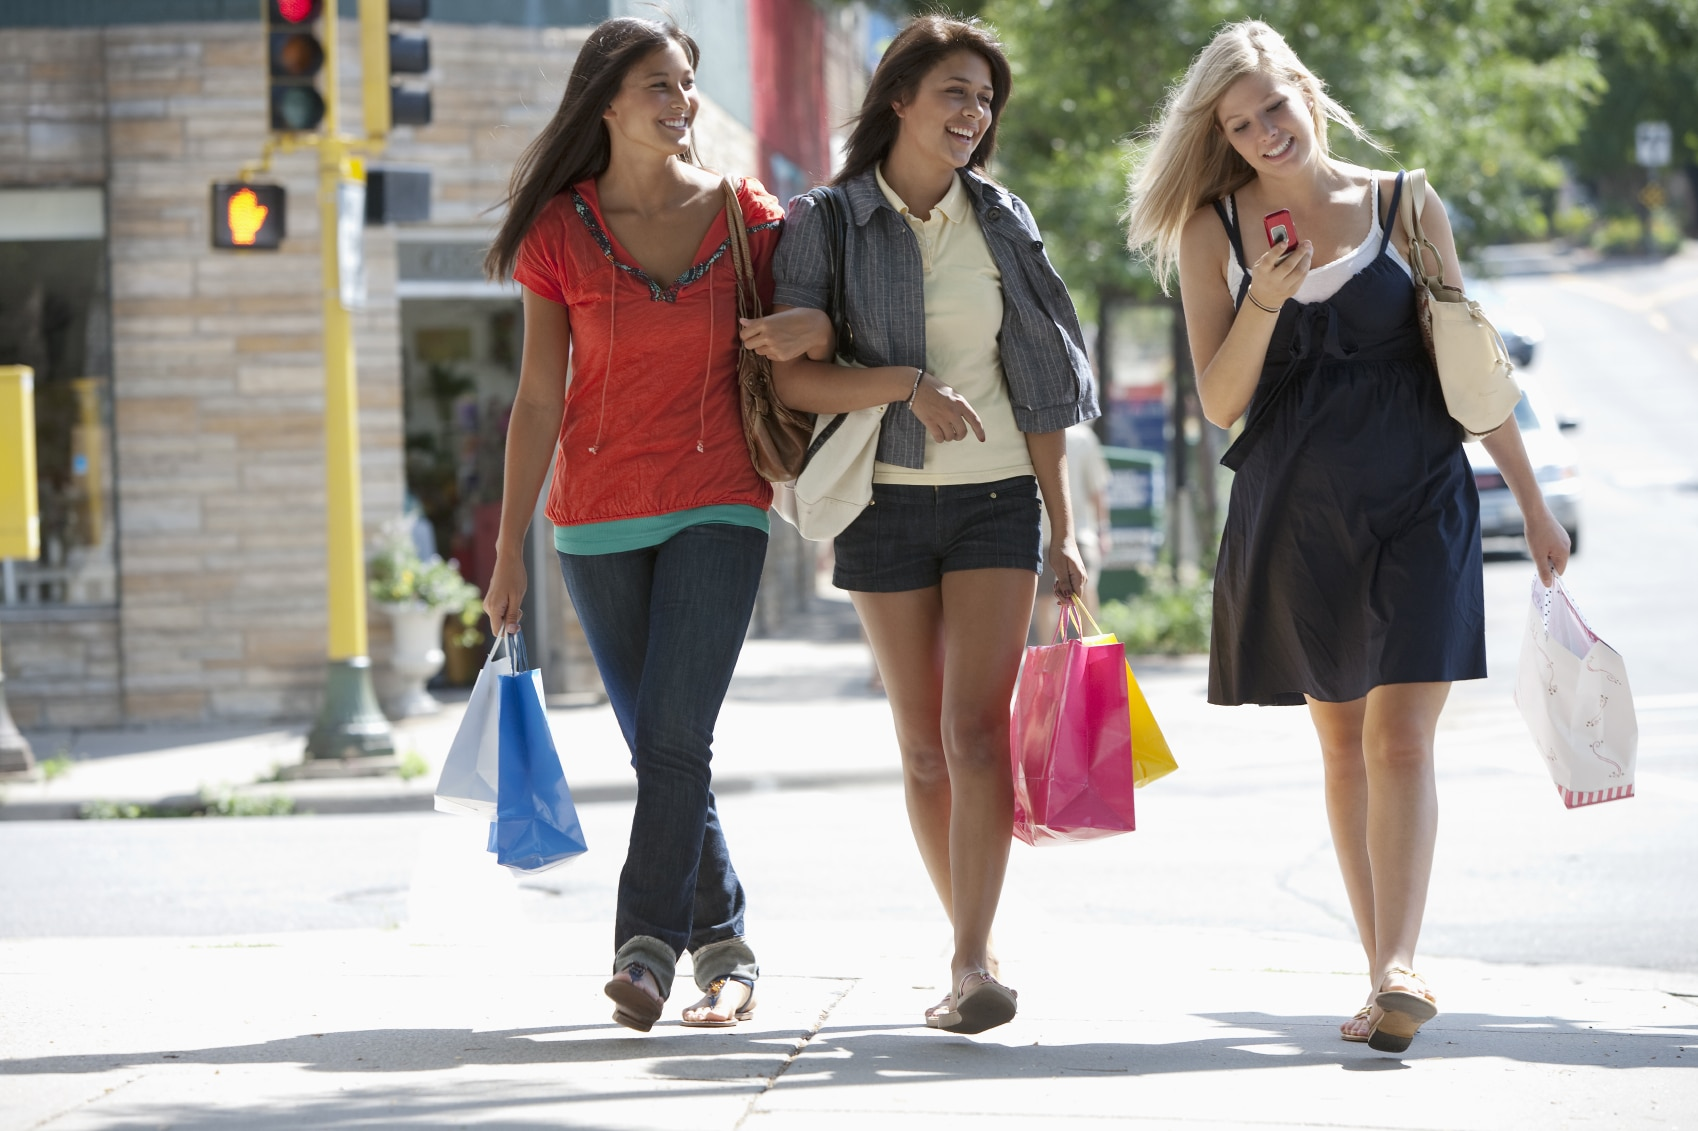 Younger Shoppers Want Stores